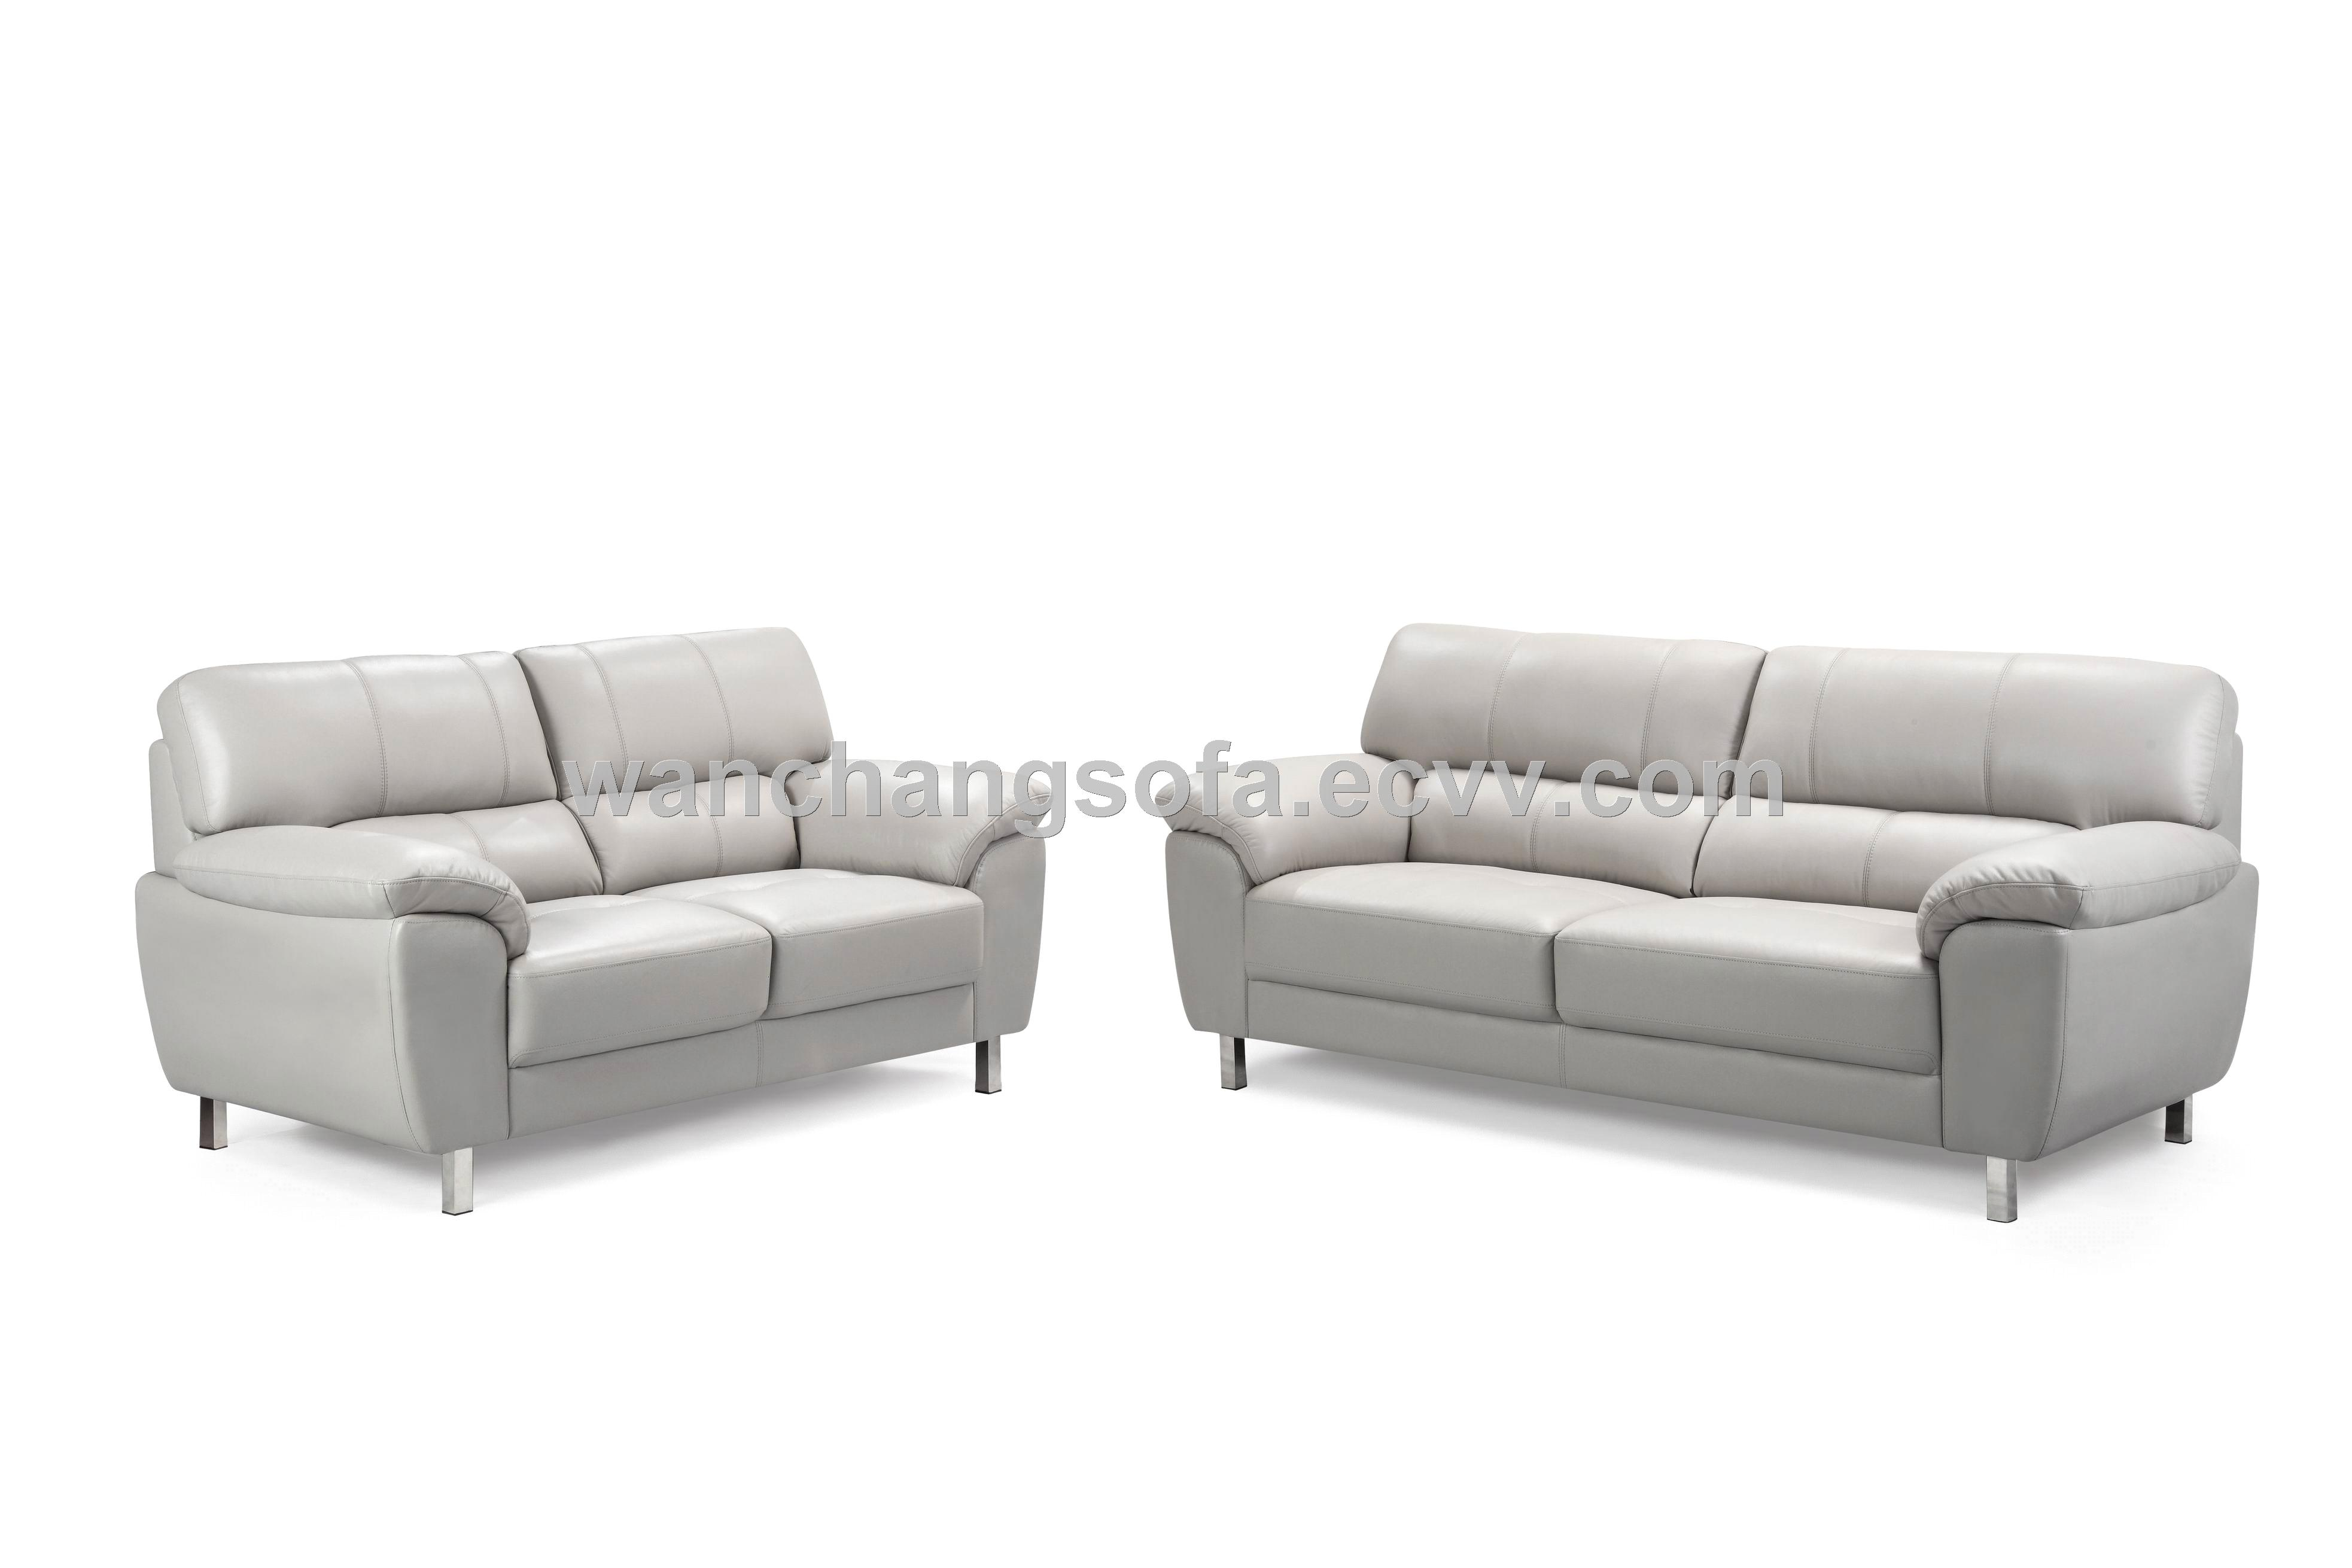 light gray leather sofa set mart oak express bedroom expressions and furniture row grey nice modern purchasing